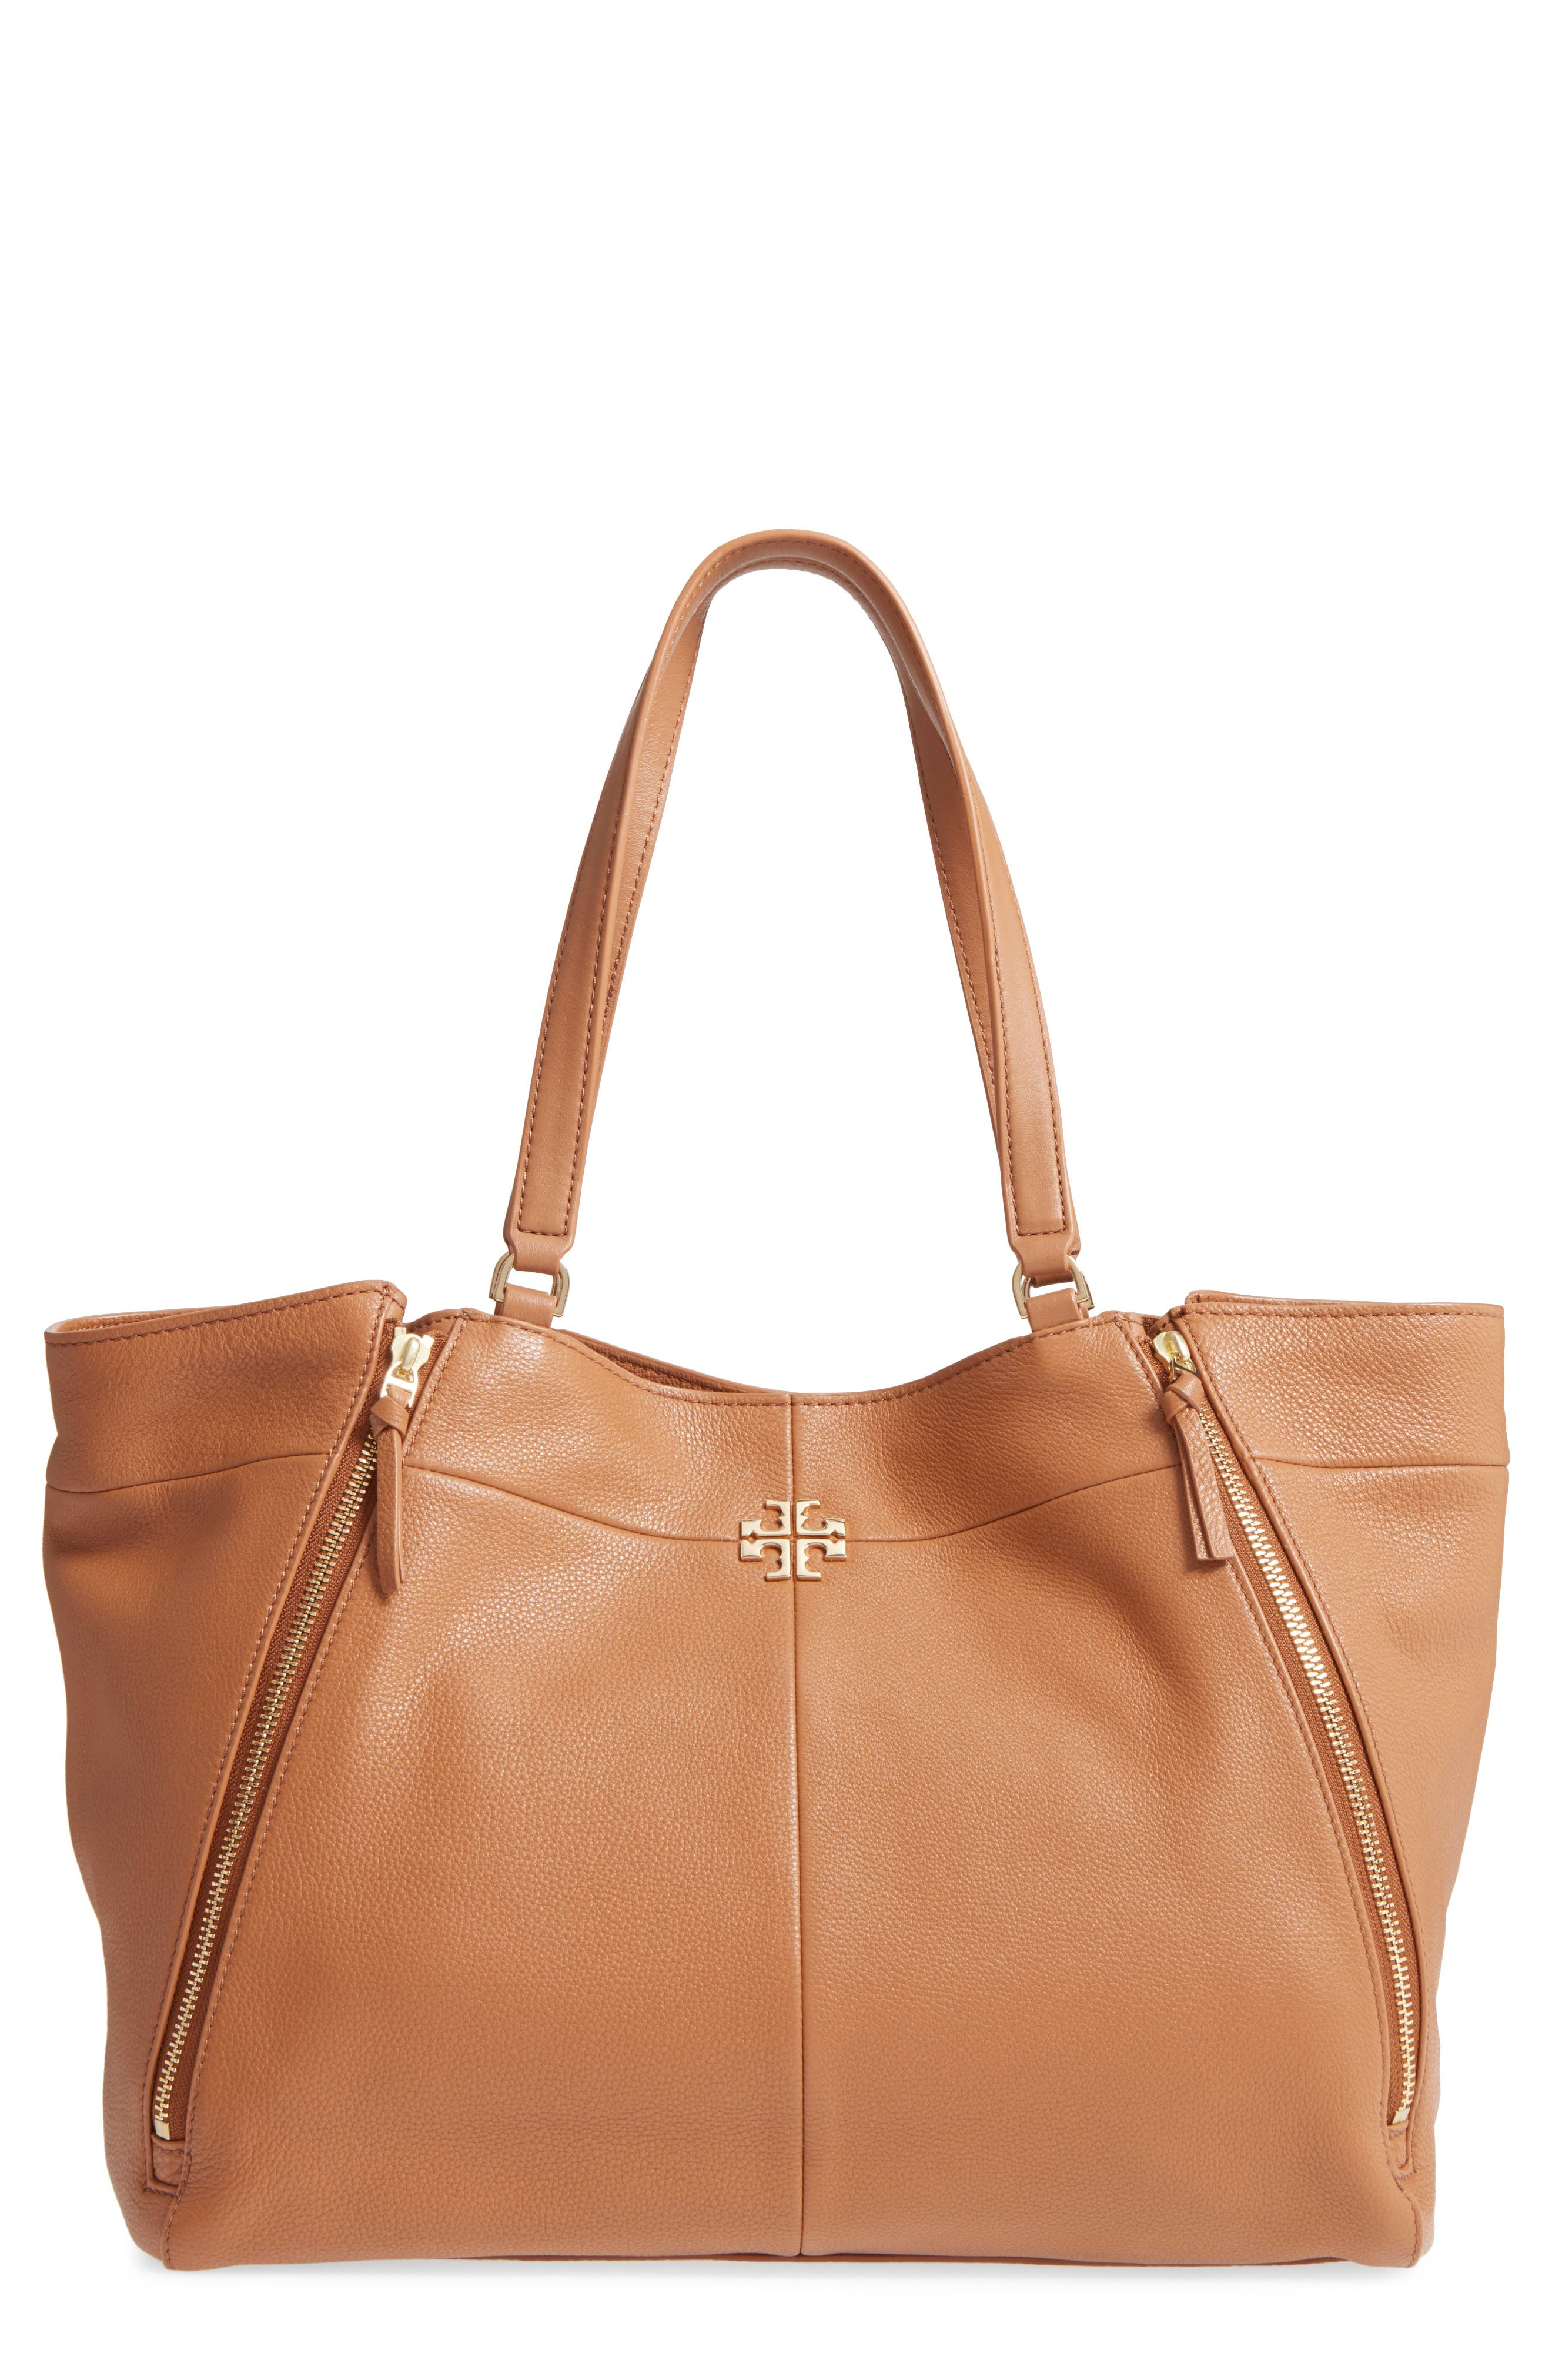 Tory Burch Ivy Leather Tote